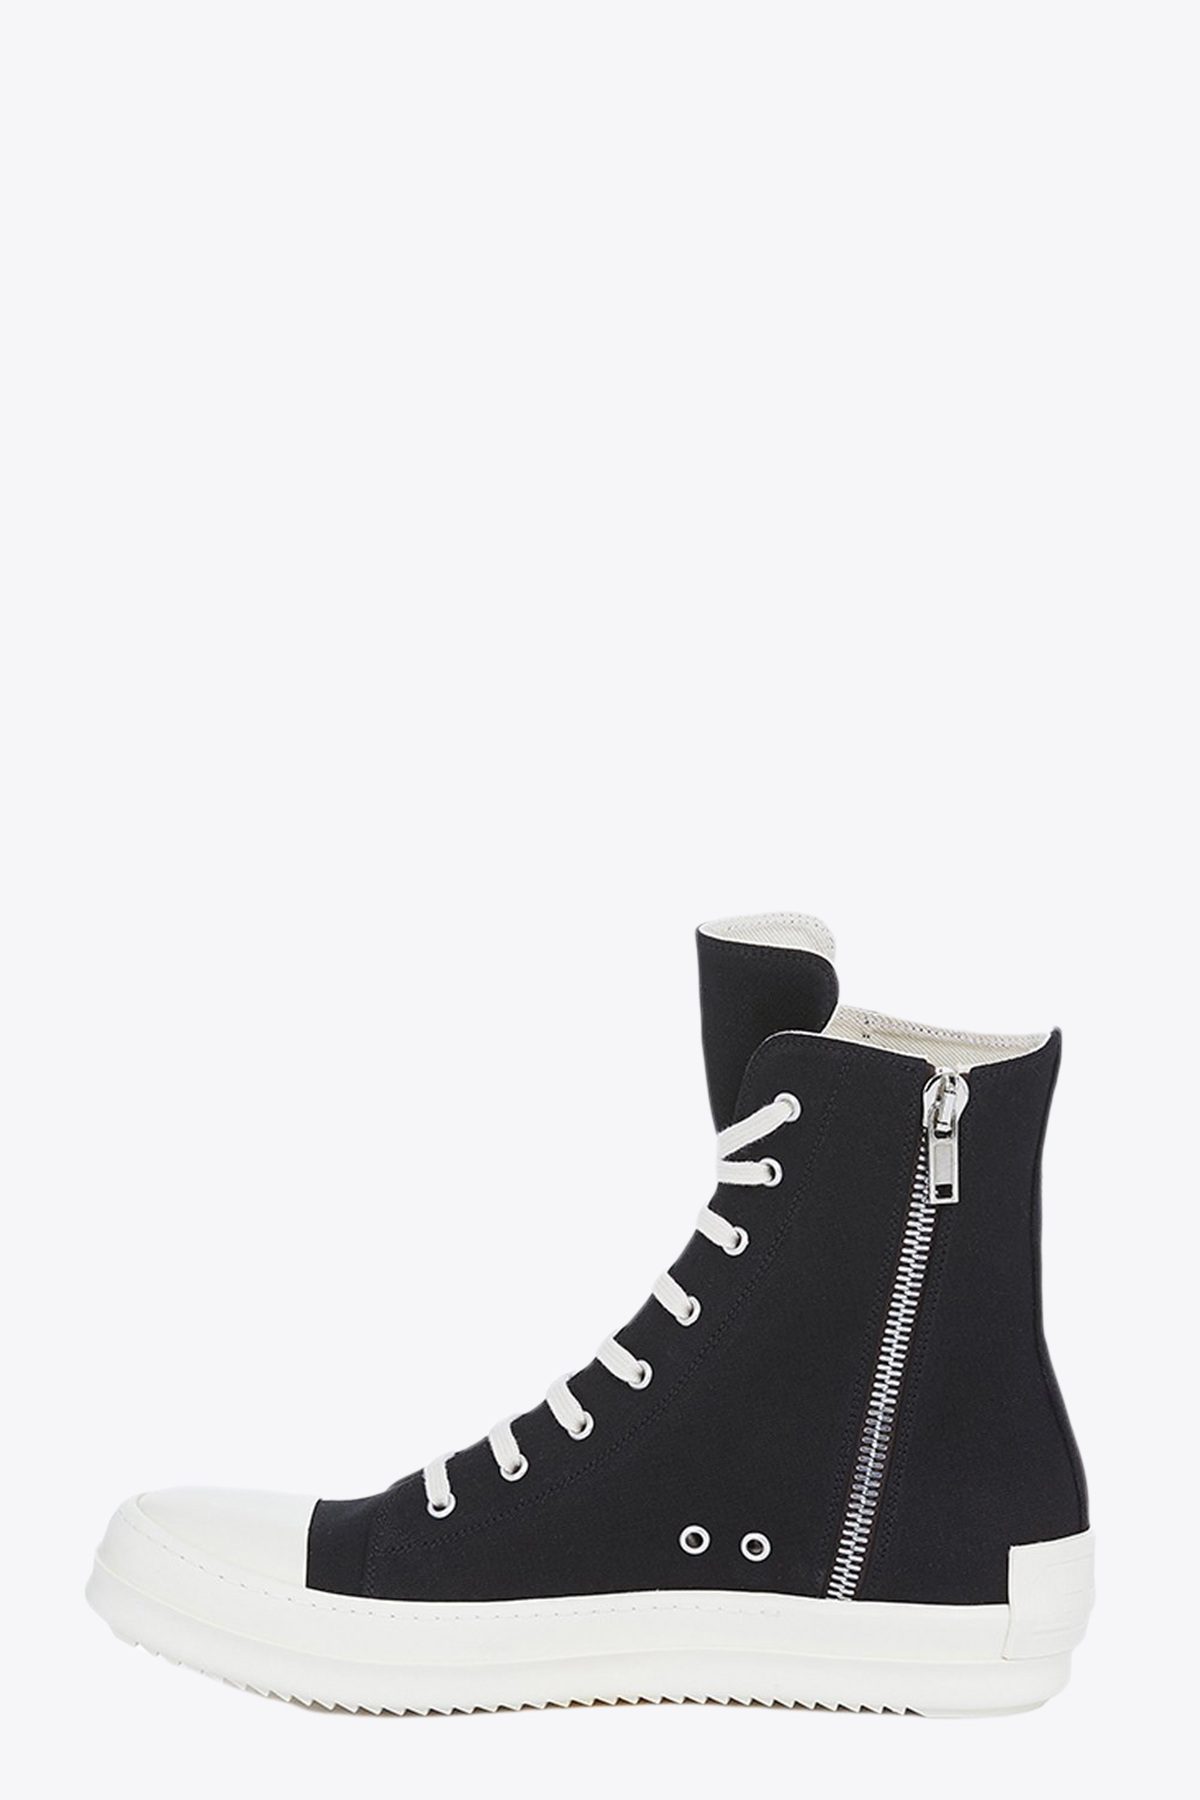 LACE UP HIGH TOP SNEAKERS RICK OWENS-DRKSHDW | 10000039 | DU21S2800 TNAPH2 SNEAKERS911